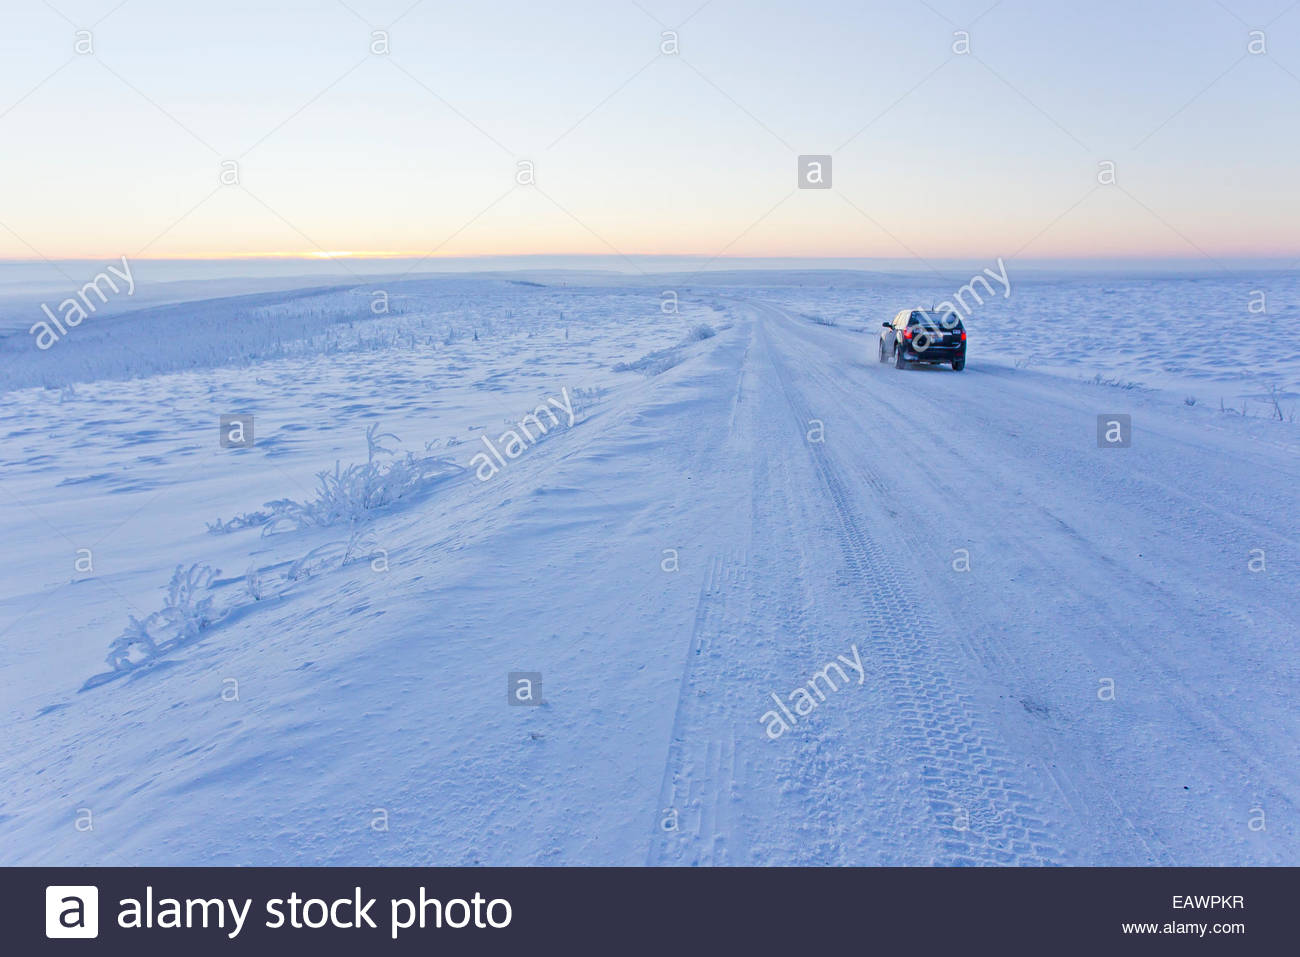 A vehicle parked in a snow and ice covered landscape along the Dempster Highway. - Stock Image